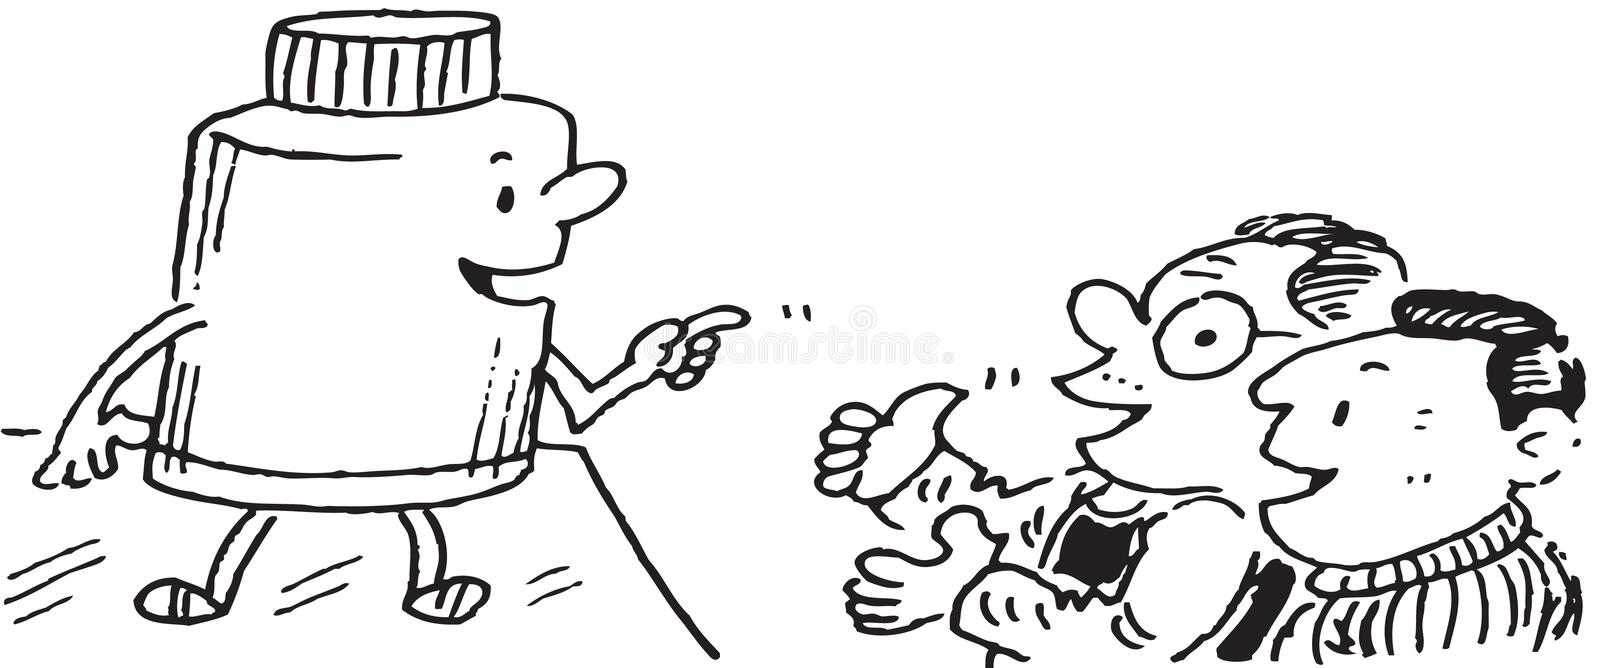 Fertilizer talking to farmers. Illustration of a large cartoon character fertilizer, pointing and talking to two laughing farmers stock illustration